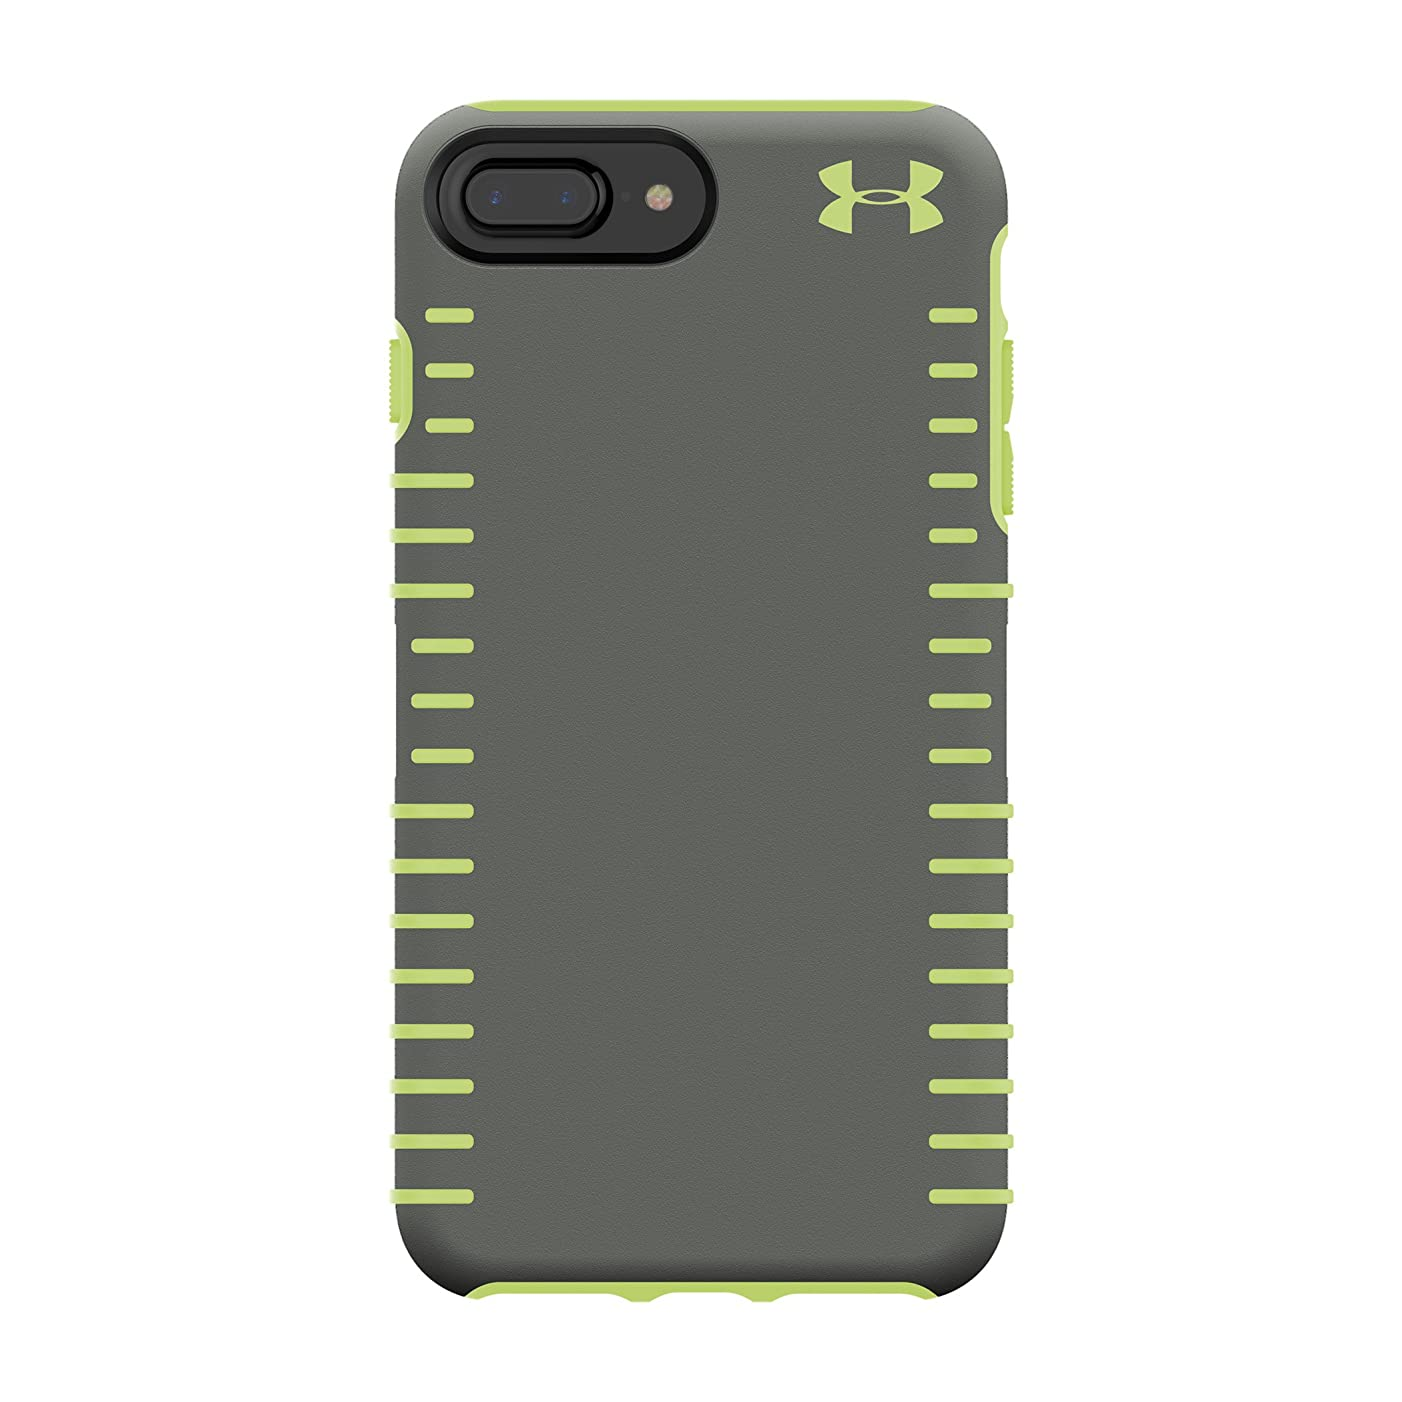 Under Armour UA Protect Grip Case for iPhone 8 Plus - Also Compatible with iPhone 7 Plus, iPhone 6+/6s+ - Graphite/Quirky Lime